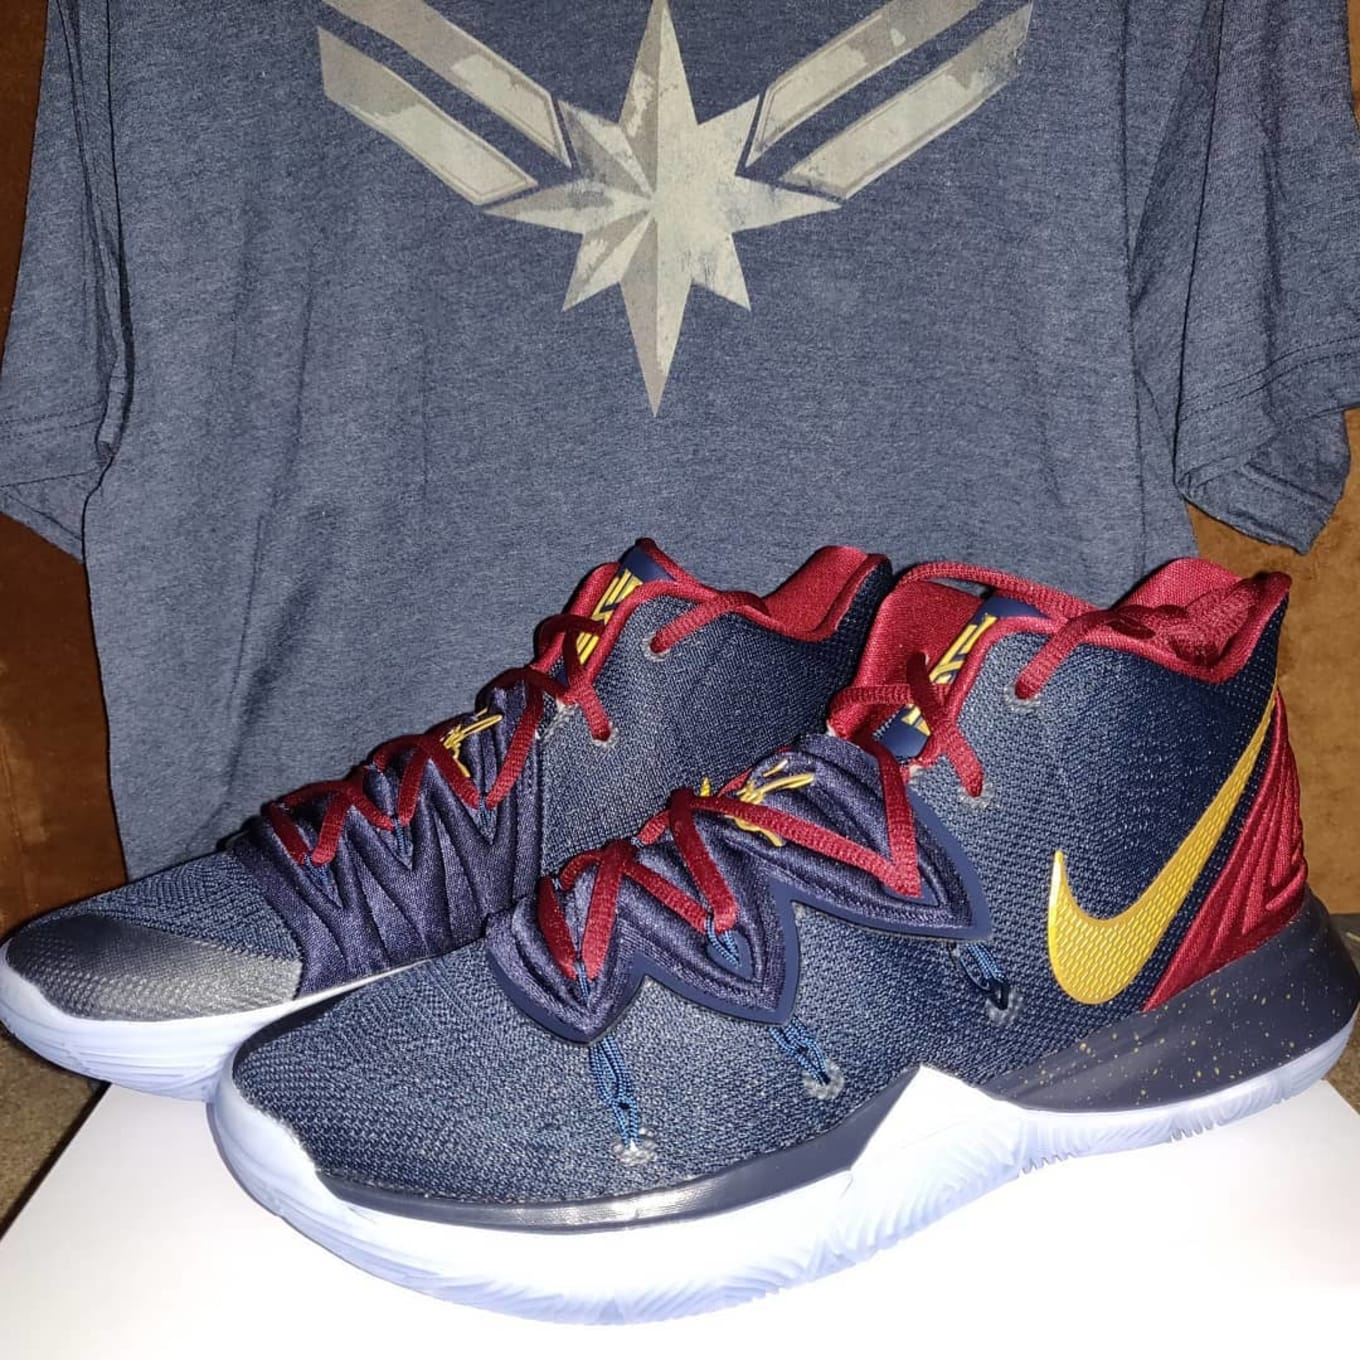 d5a83044eeb4 NIKEiD By You Kyrie 5 Designs